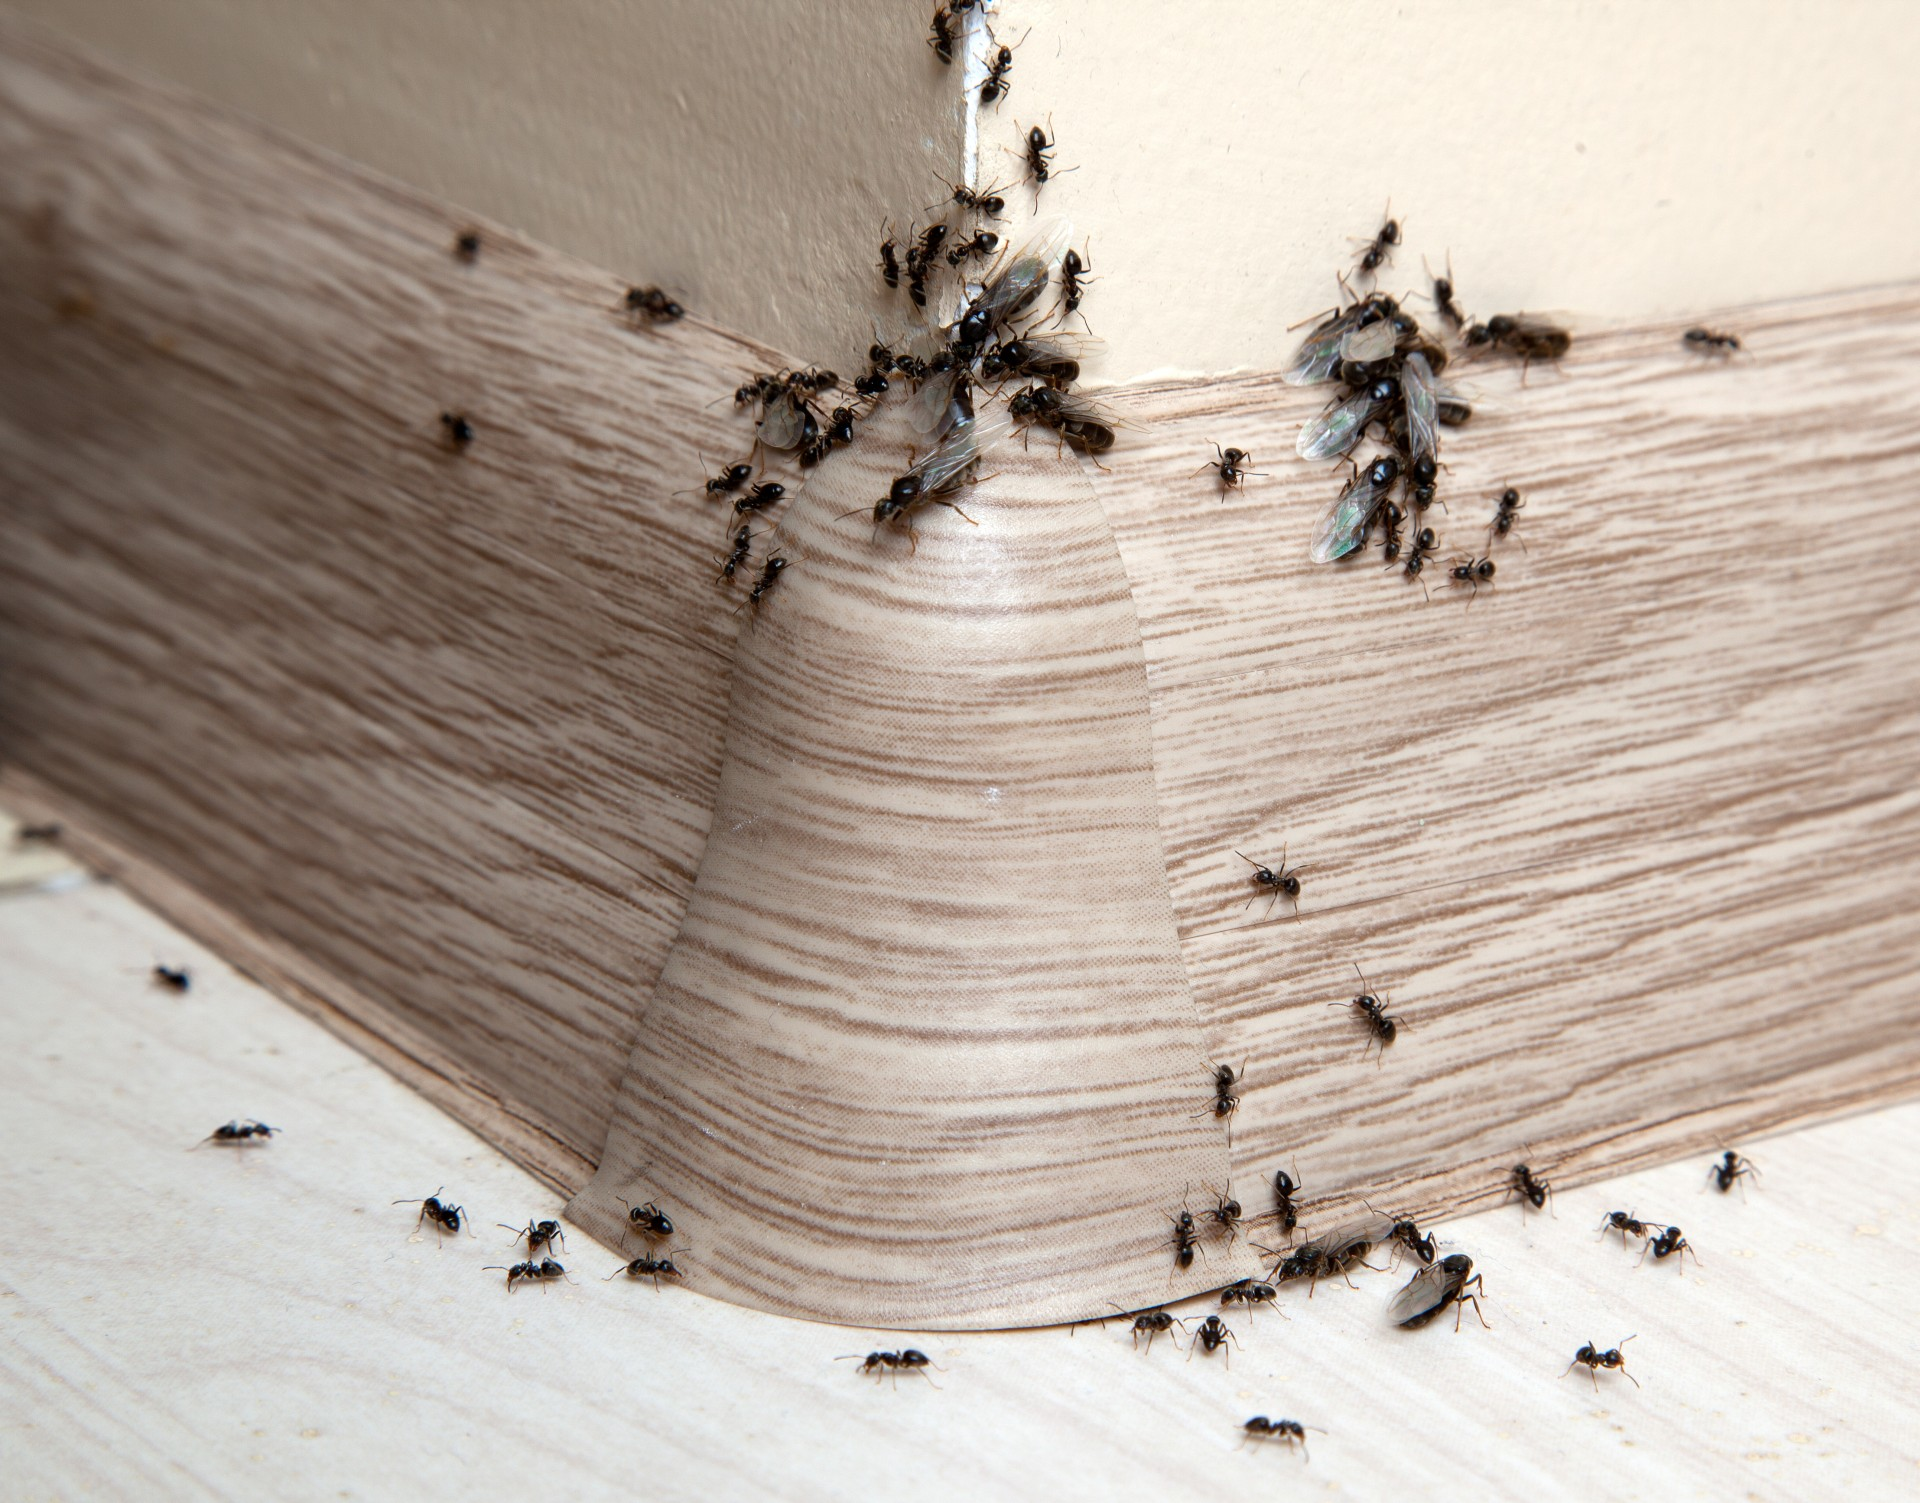 Ant Infestation, Pest Control in Chessington, Hook, KT9. Call Now 020 8166 9746